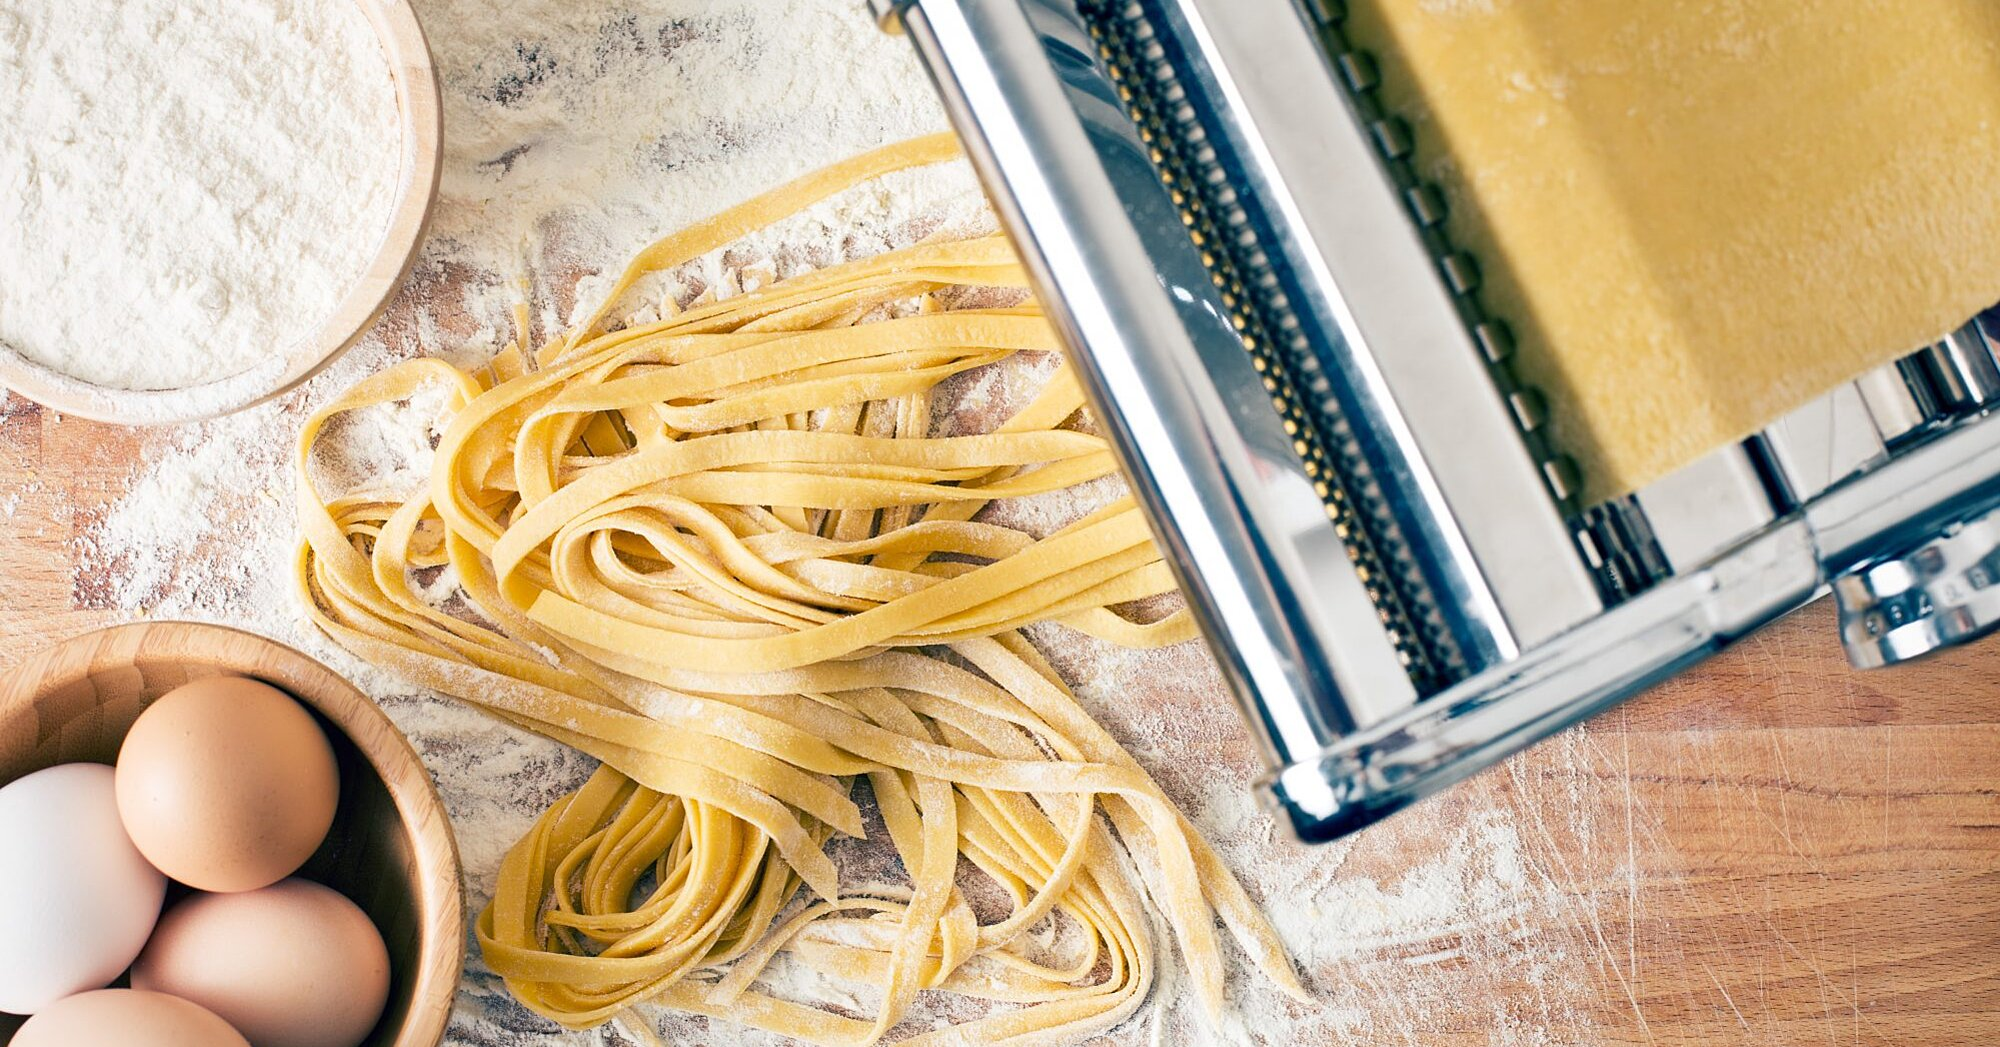 Homemade Pasta Is Easier Than You Think—So Long As You Follow These Simple Steps